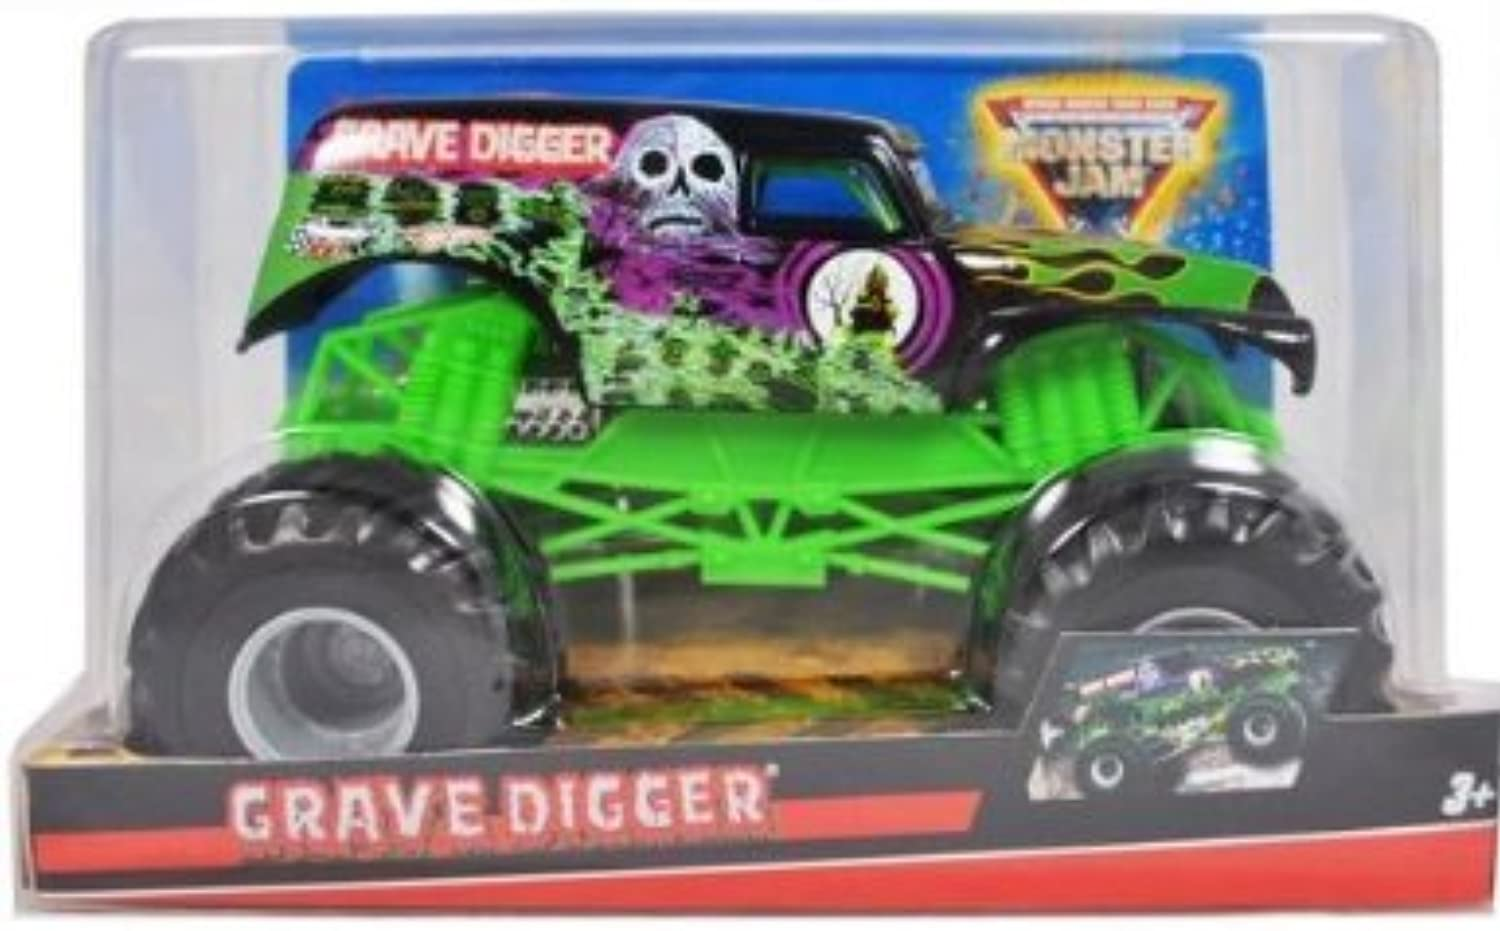 Grave Grave Grave Digger 1 24 Scale (Large Truck) Hot Wheels